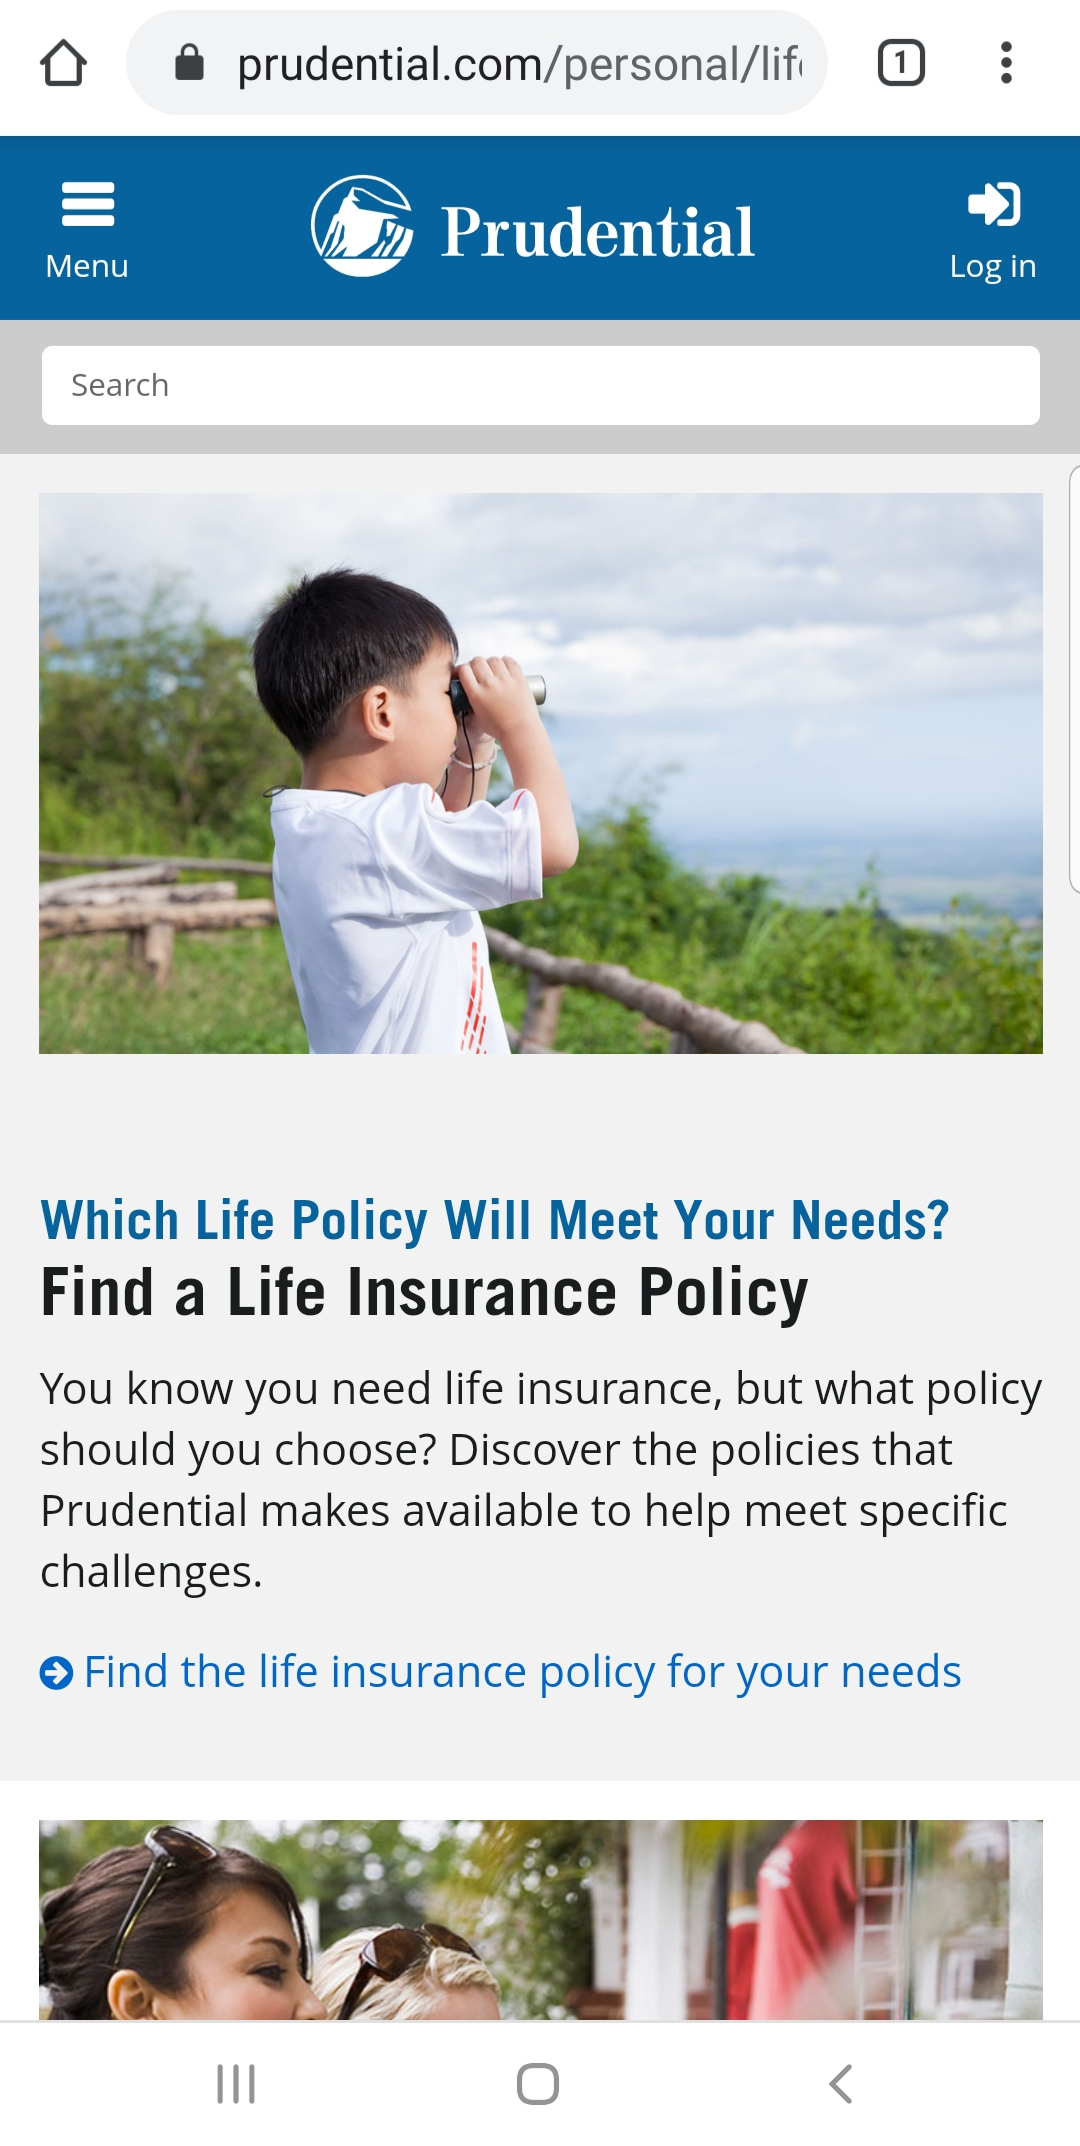 Prudential mobile homepage.